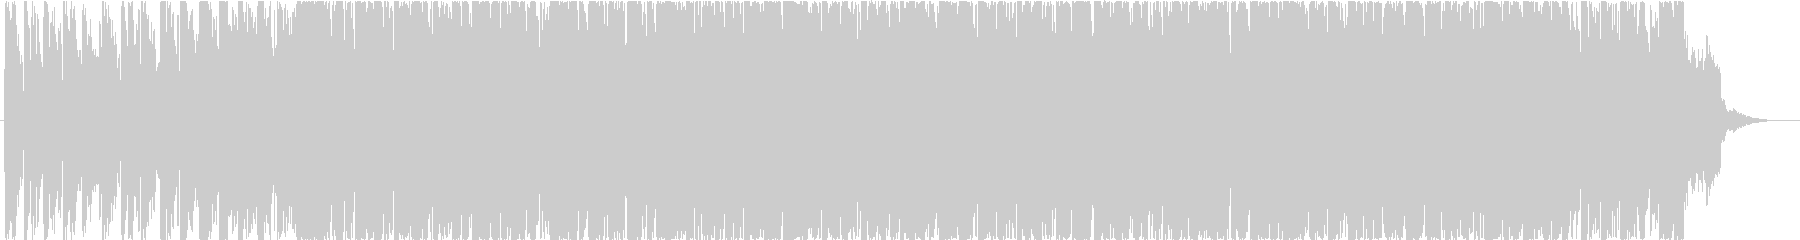 EDM that seems to suit sports and news's unreproduced waveform